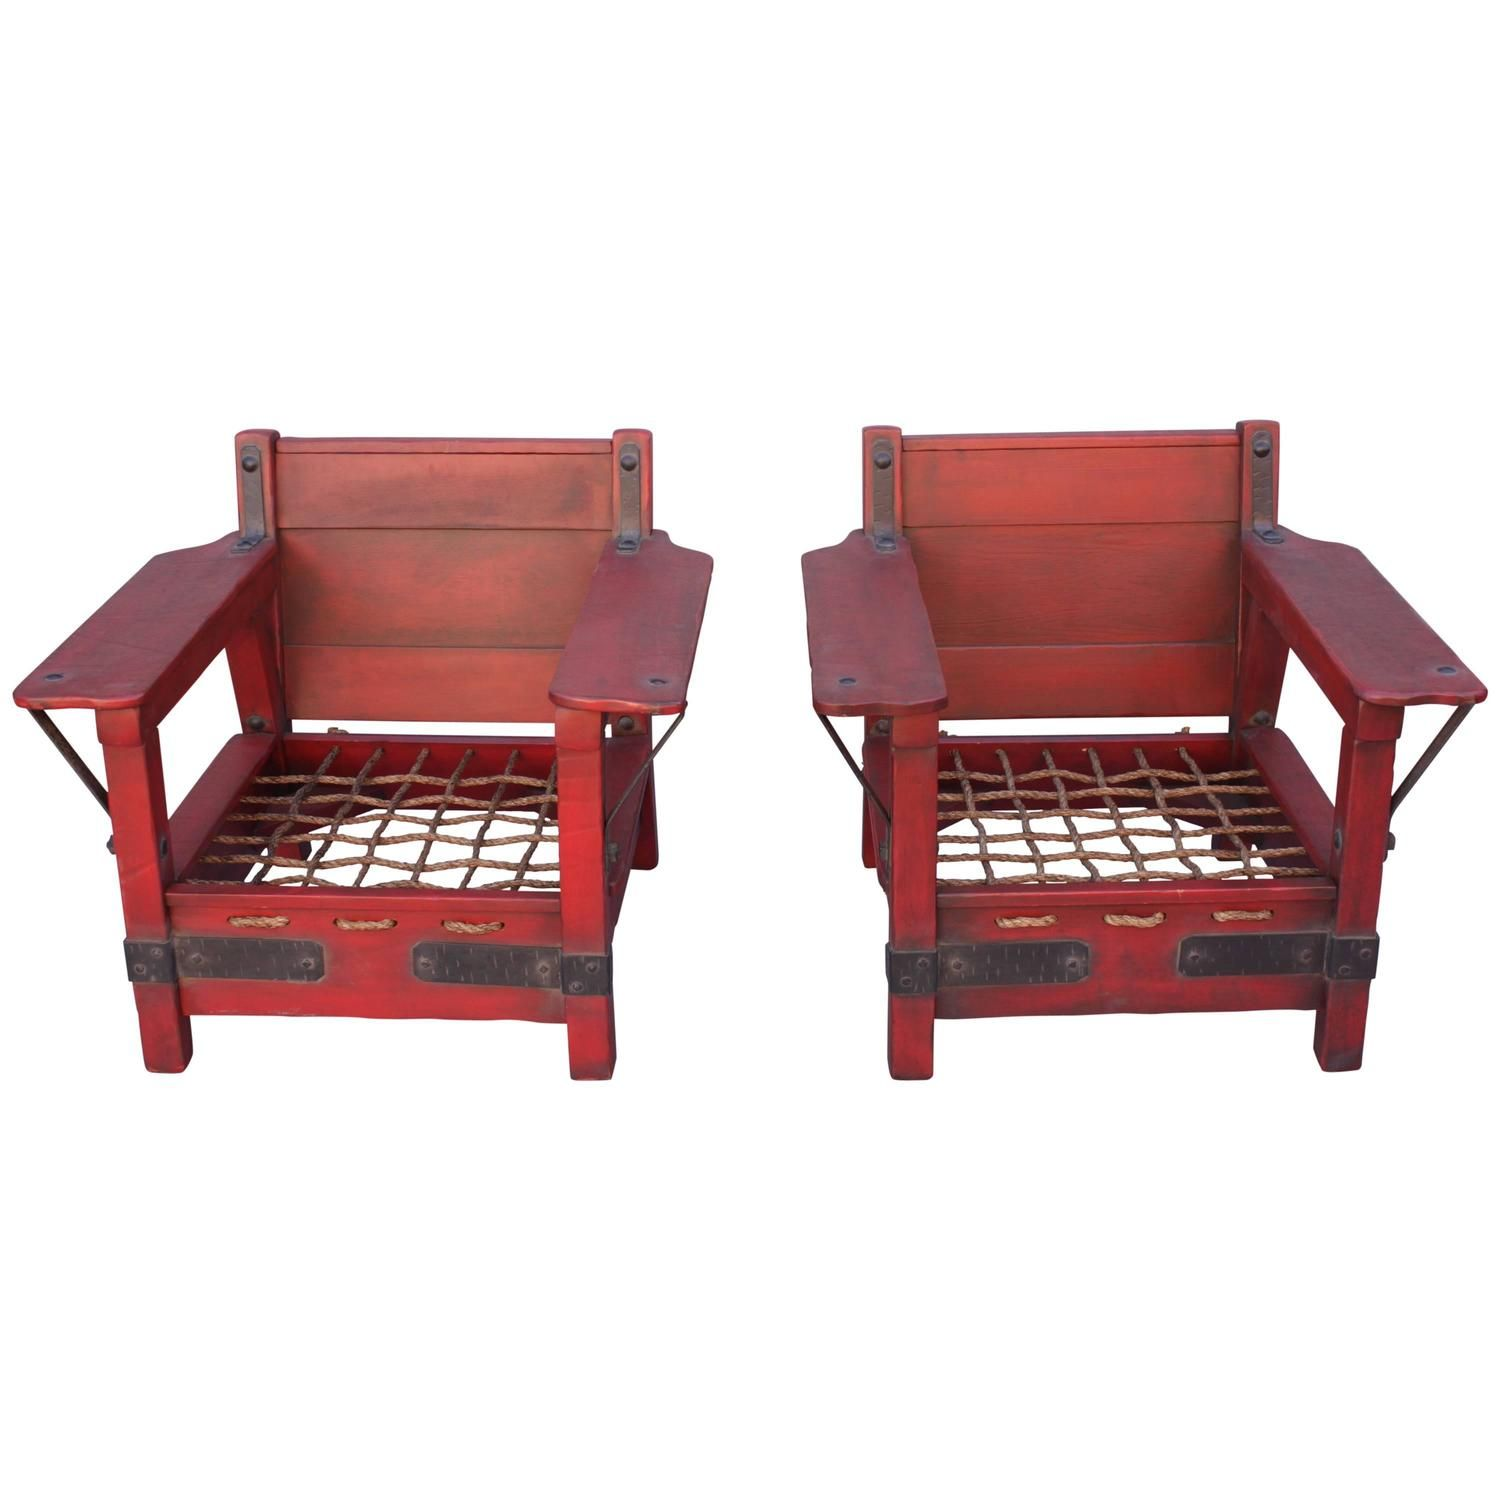 Pair of Rare Red Classic Monterey Furniture Club Chairs